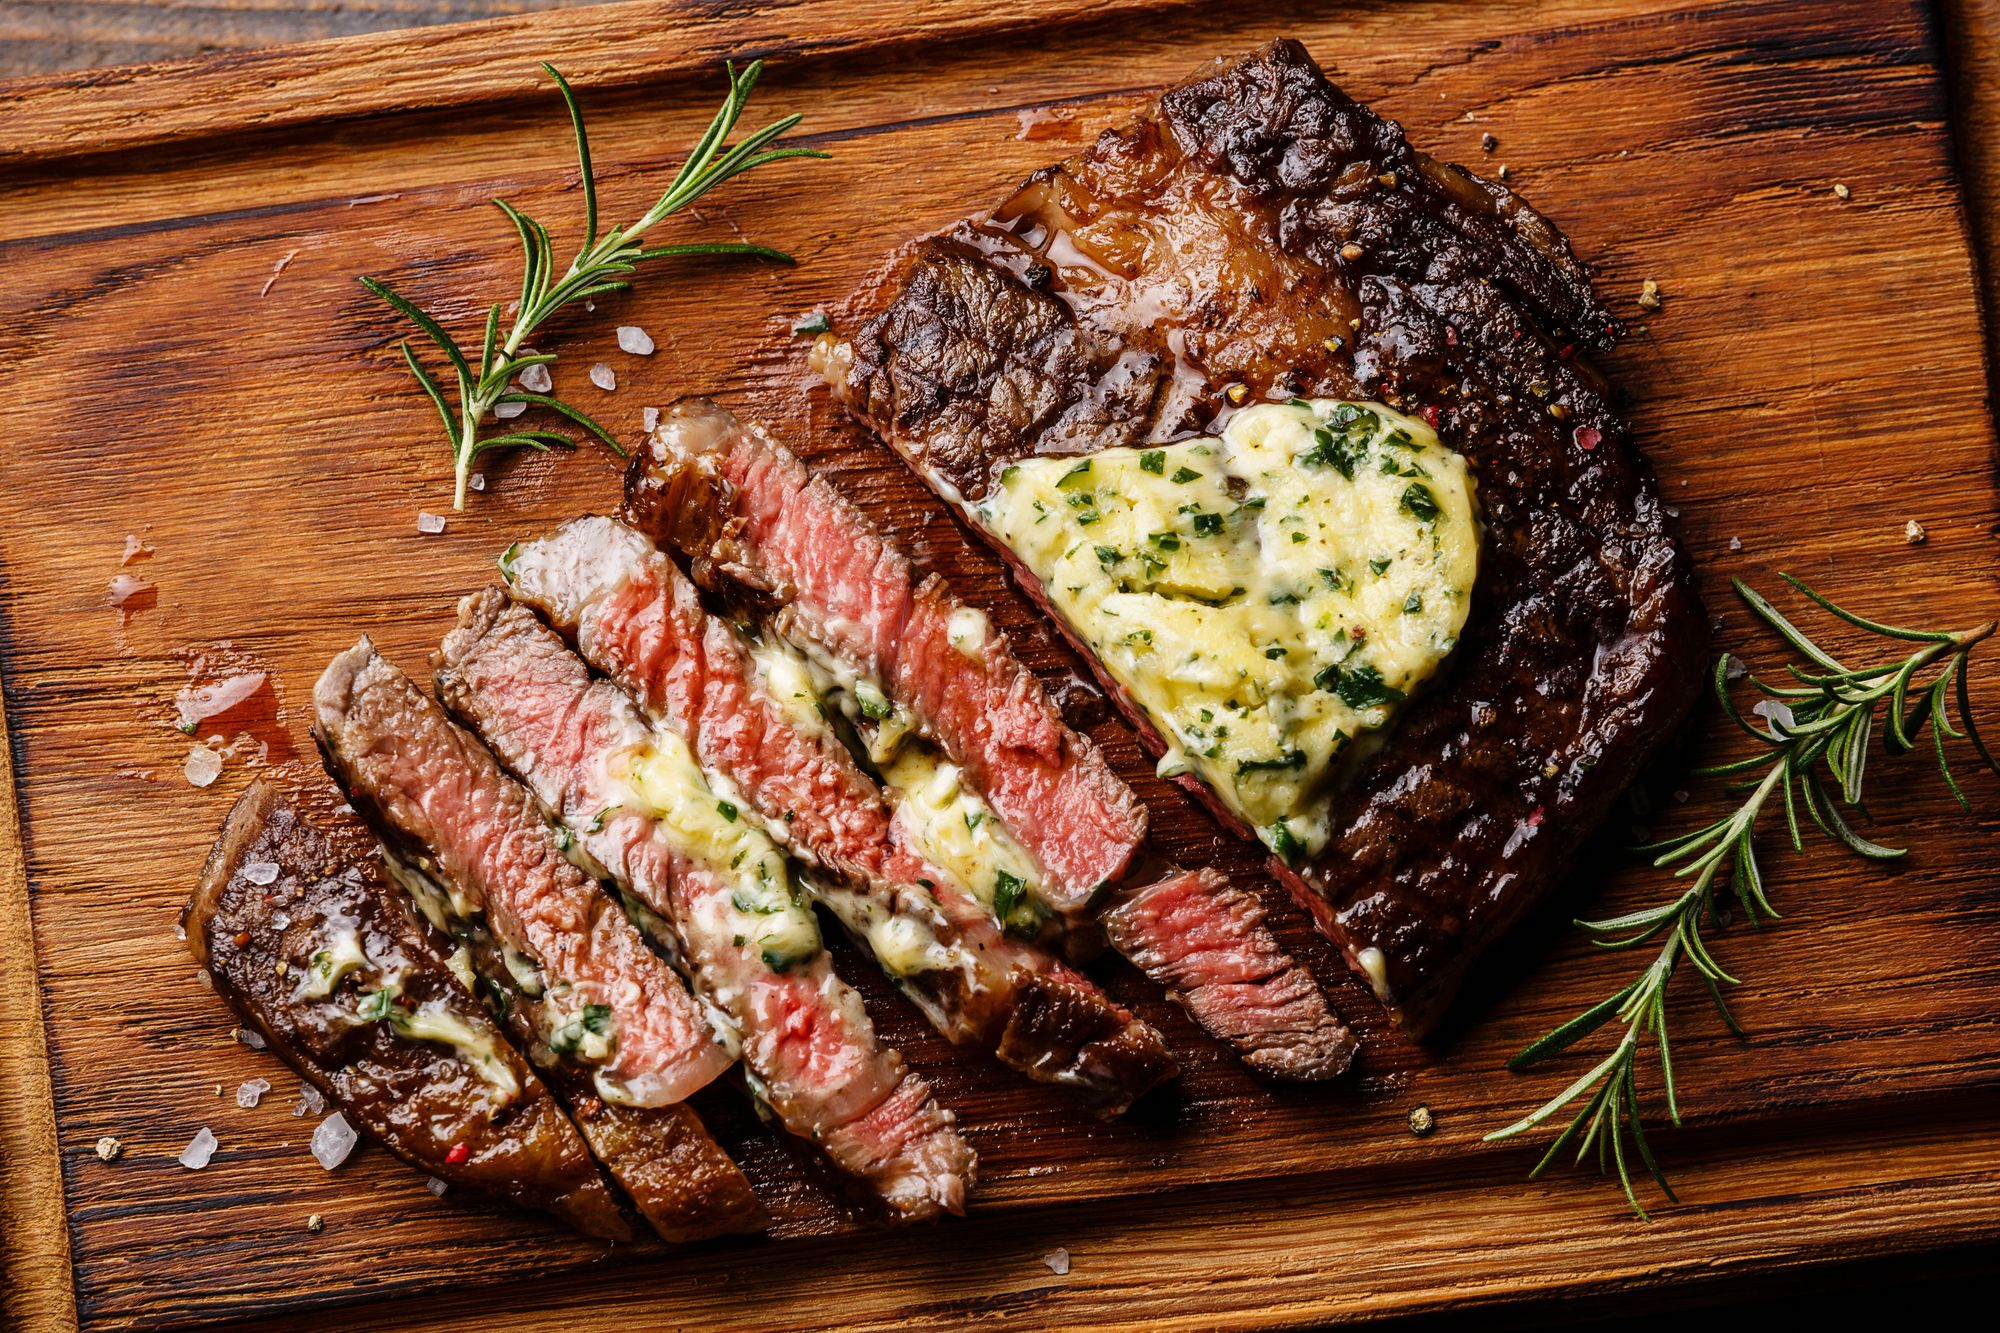 Paprika-rubbed Steak with Blue Cheese Butter